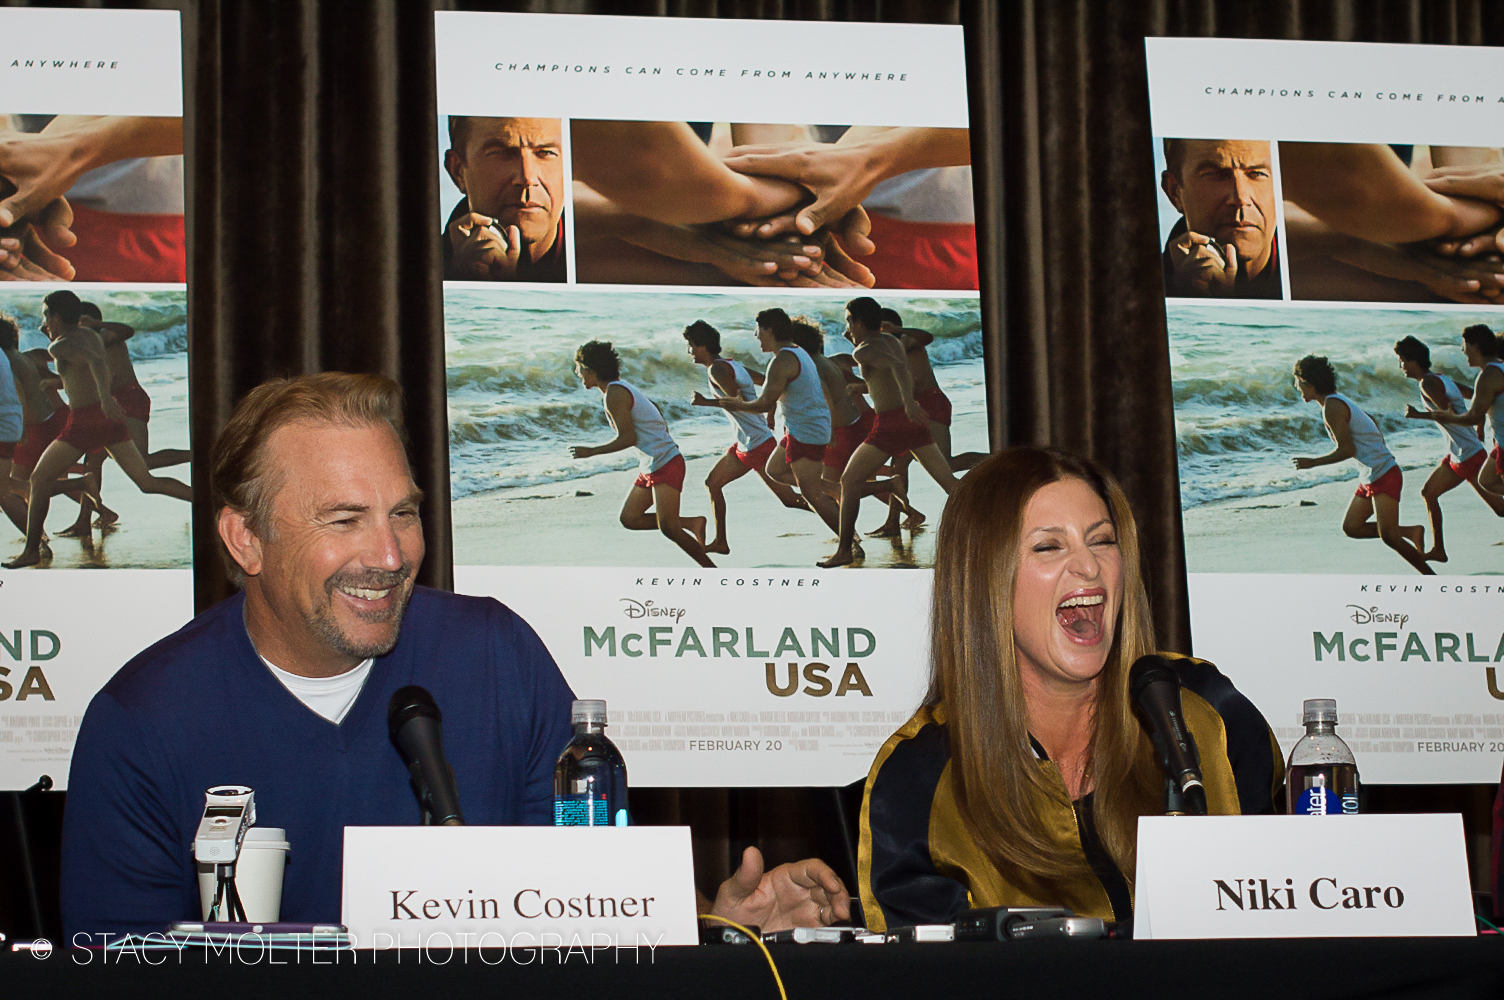 McFarland USA Press Conference Q&A – Part 1